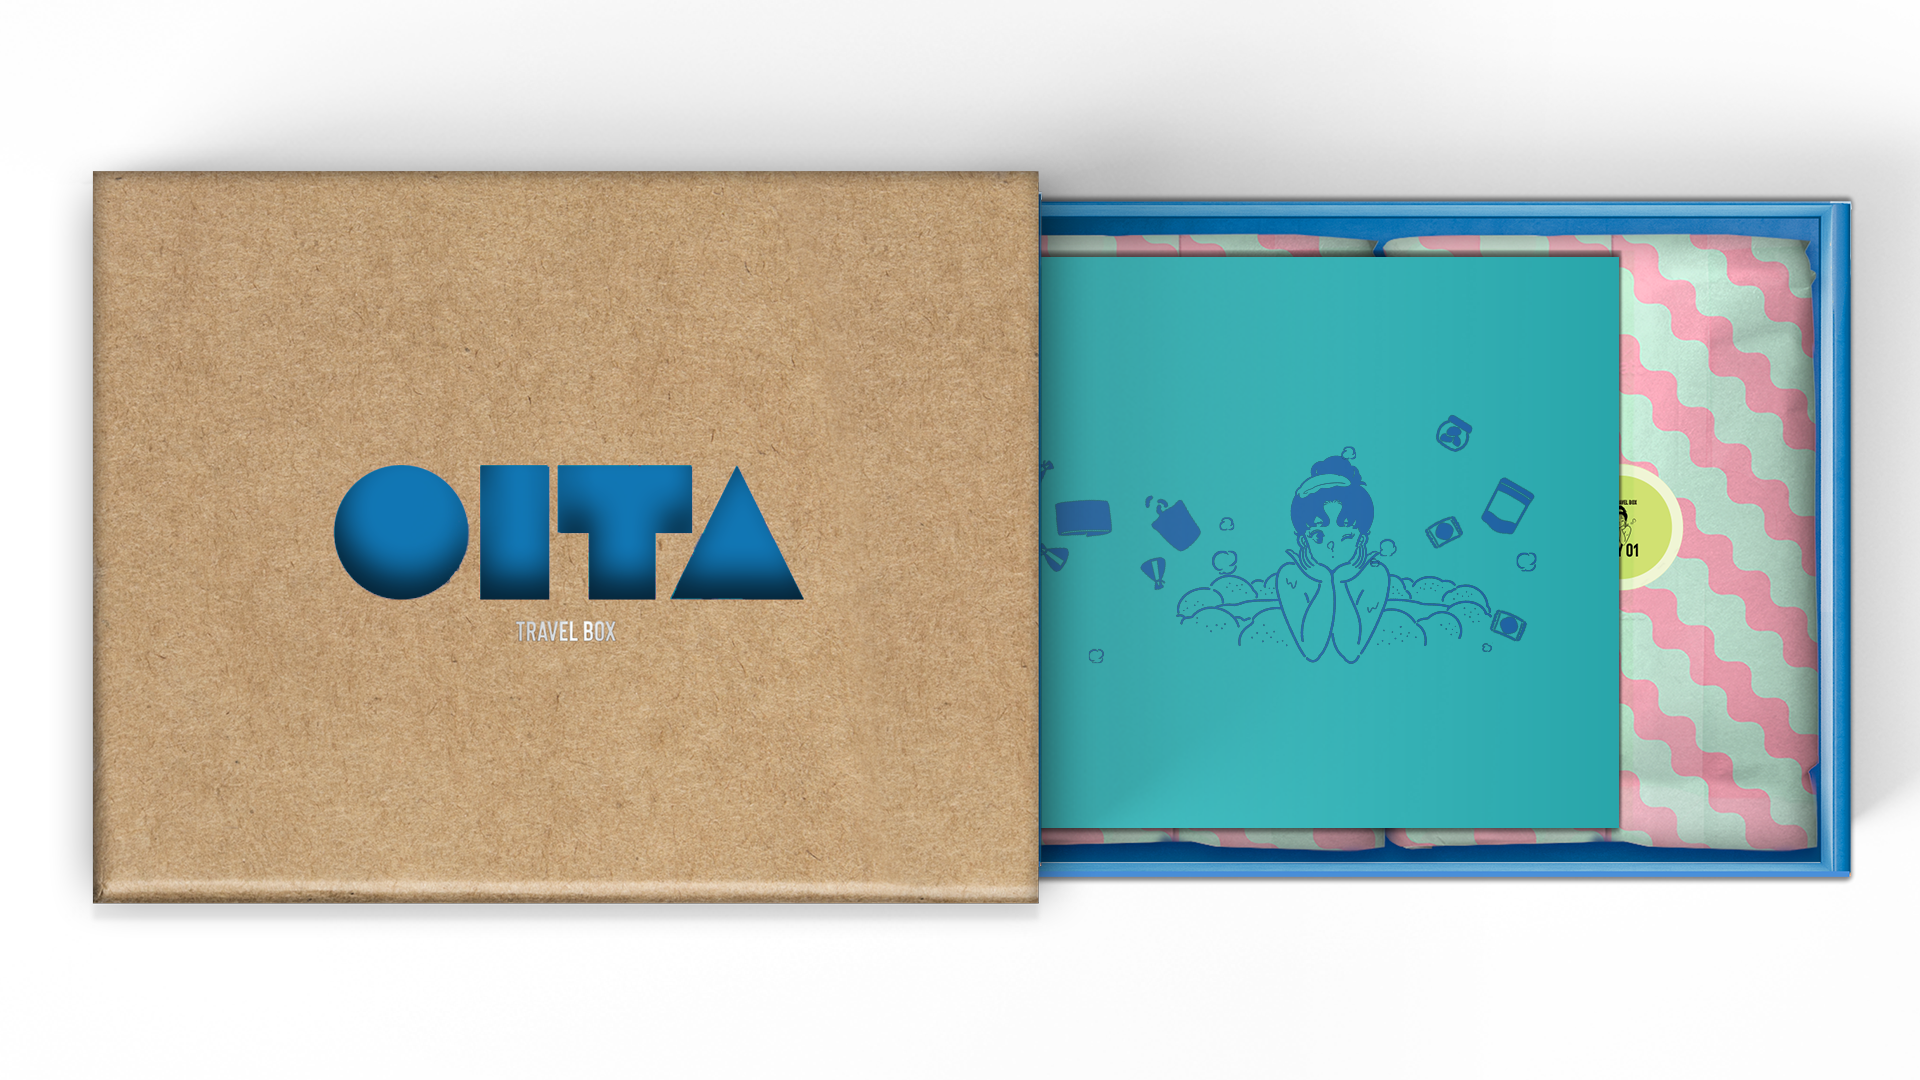 OITA TRAVEL BOX